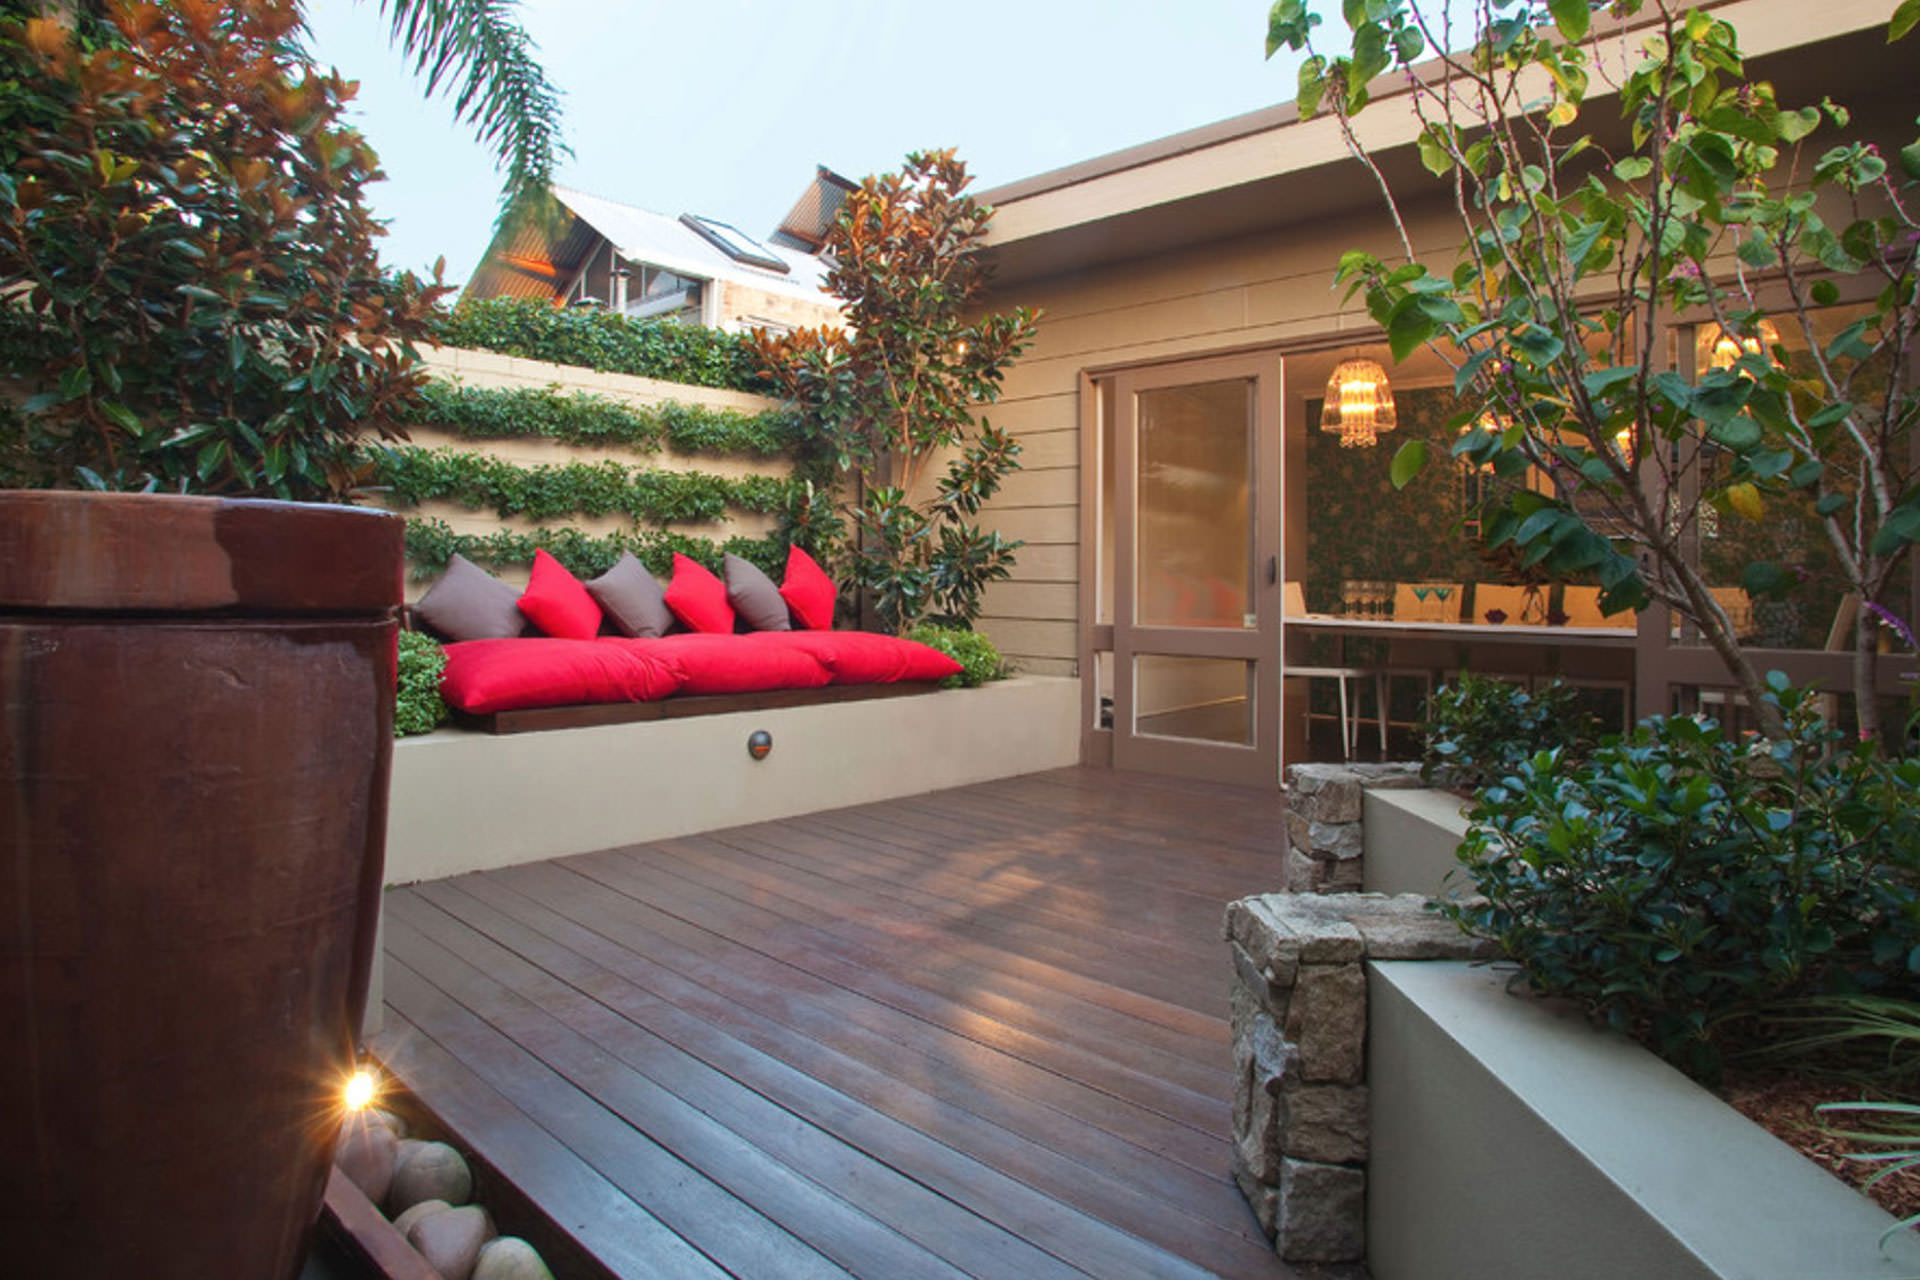 5 Ideas For Making A Big Impact In A Small Outdoor Space throughout 14 Smart Concepts of How to Makeover Ideas For Small Backyard Spaces